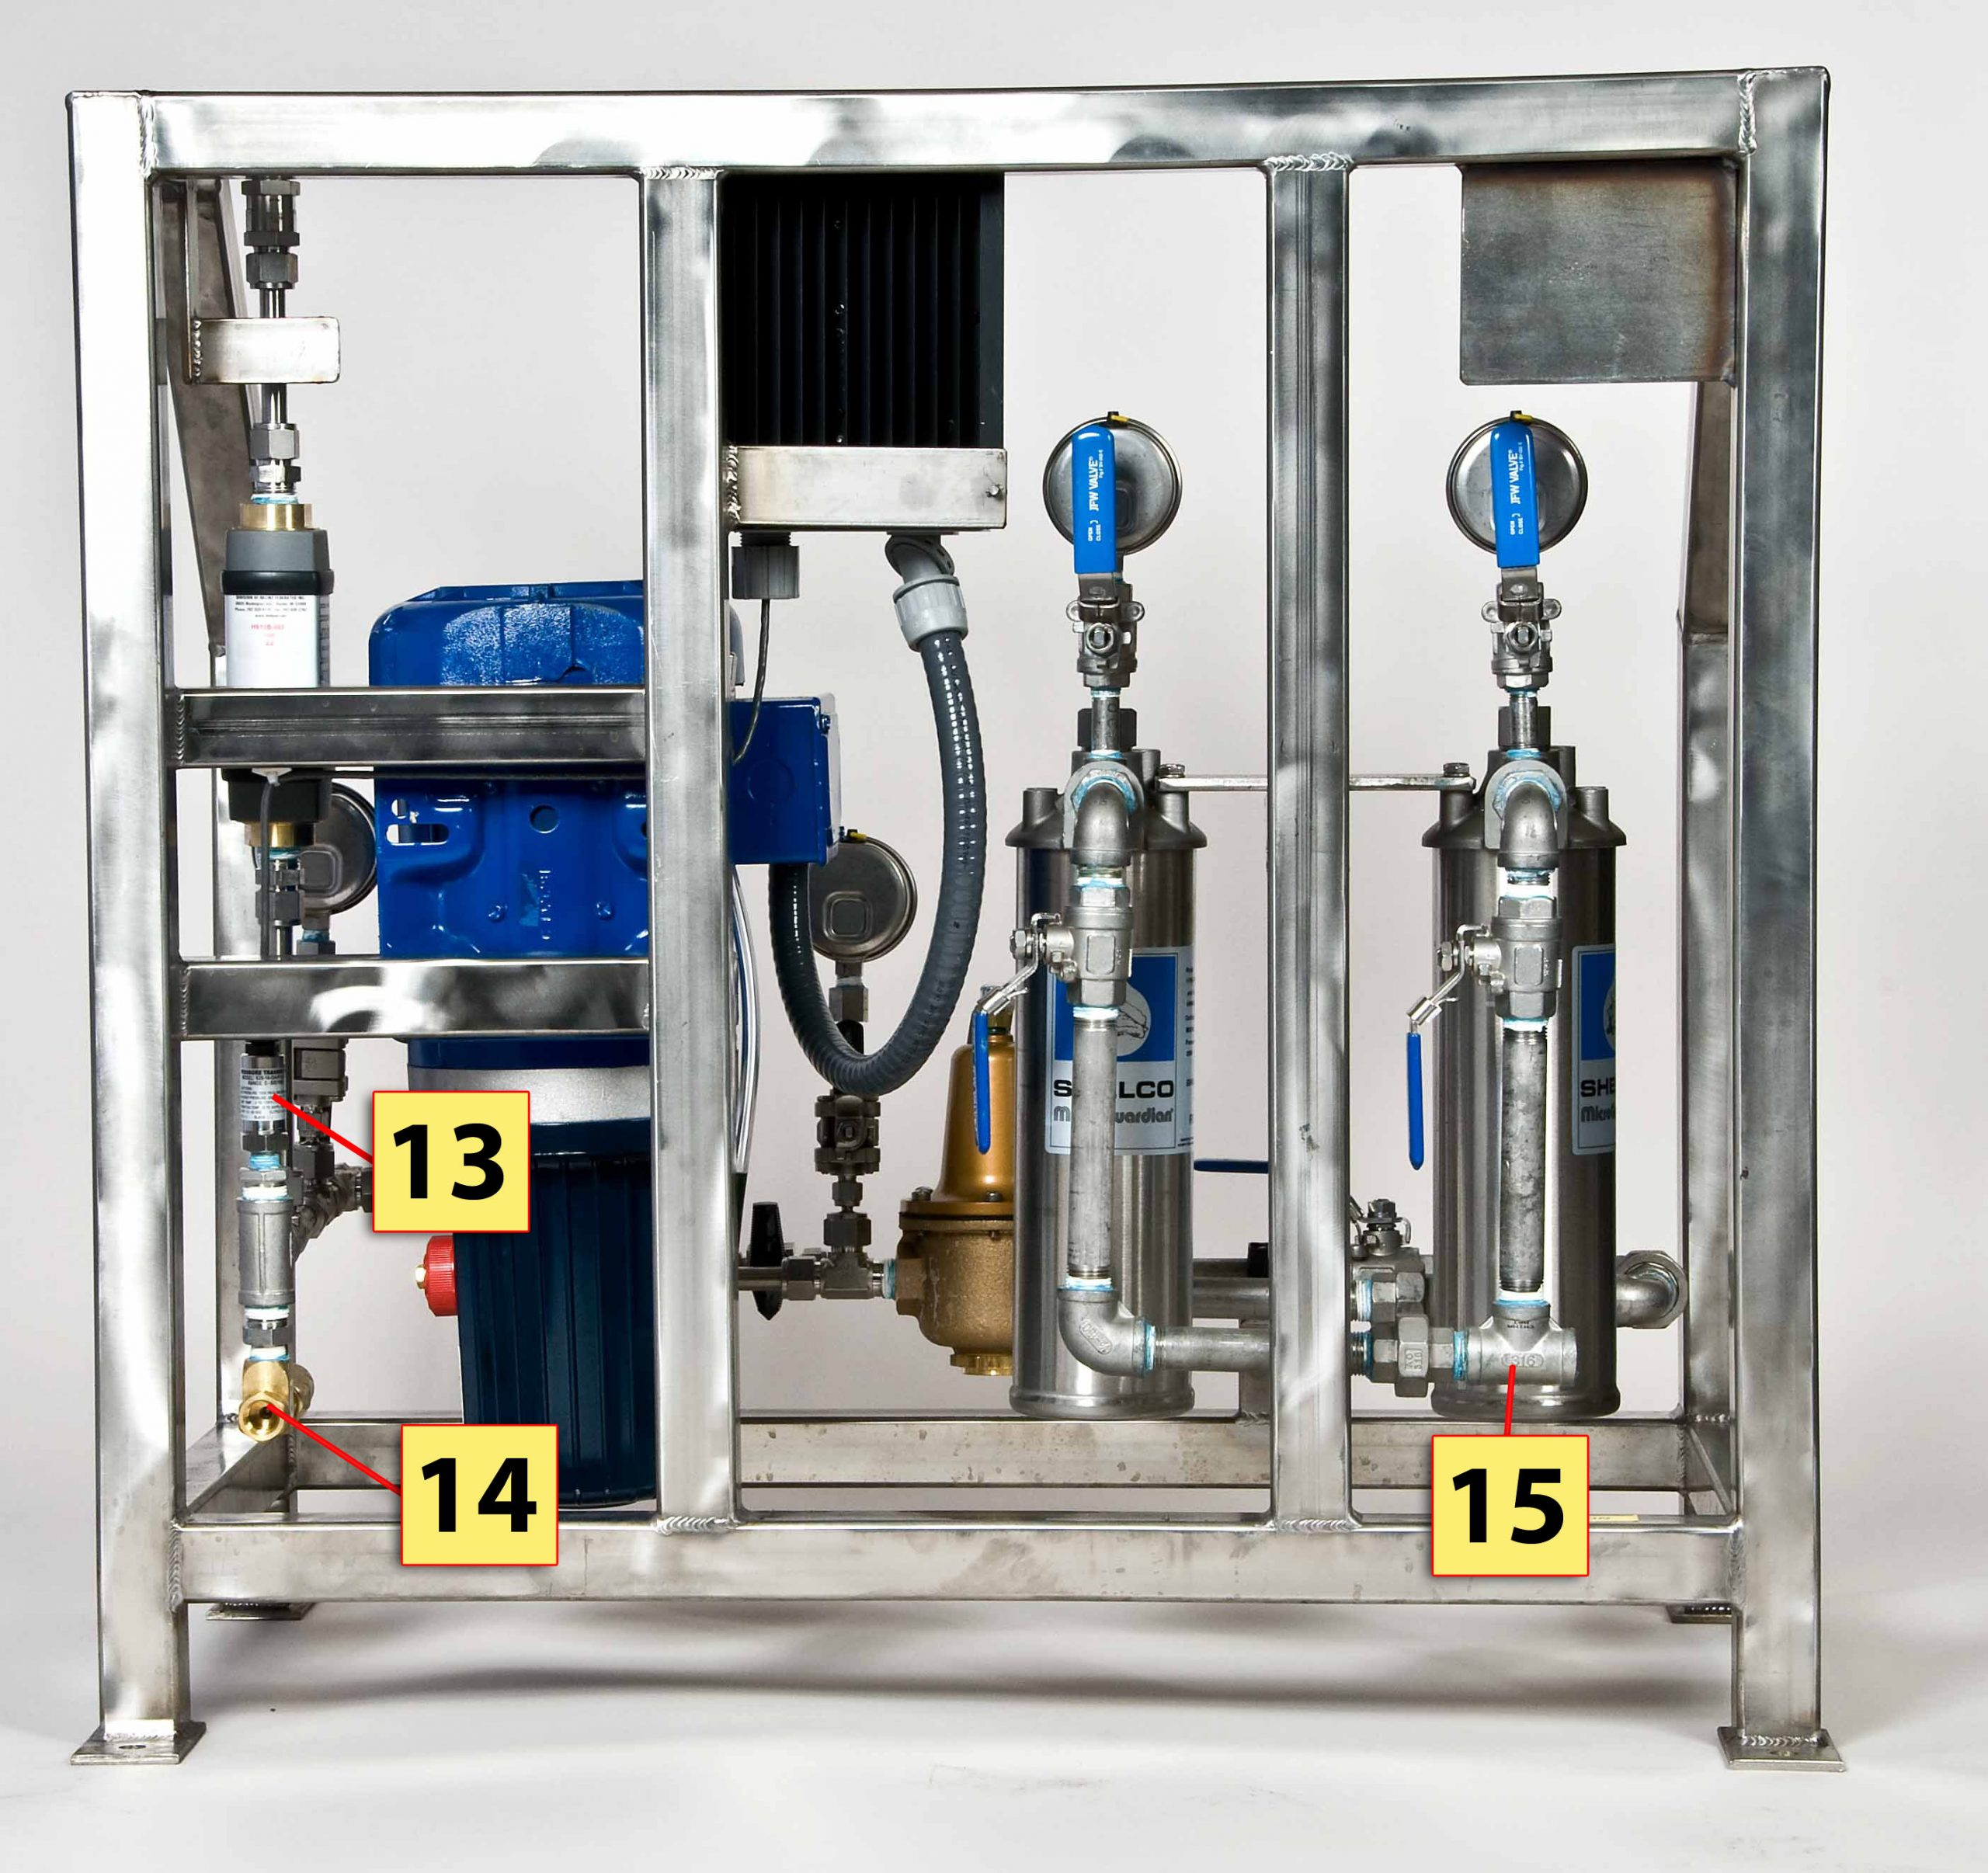 Gatewood Gde Compact Water Booster System John Brooks